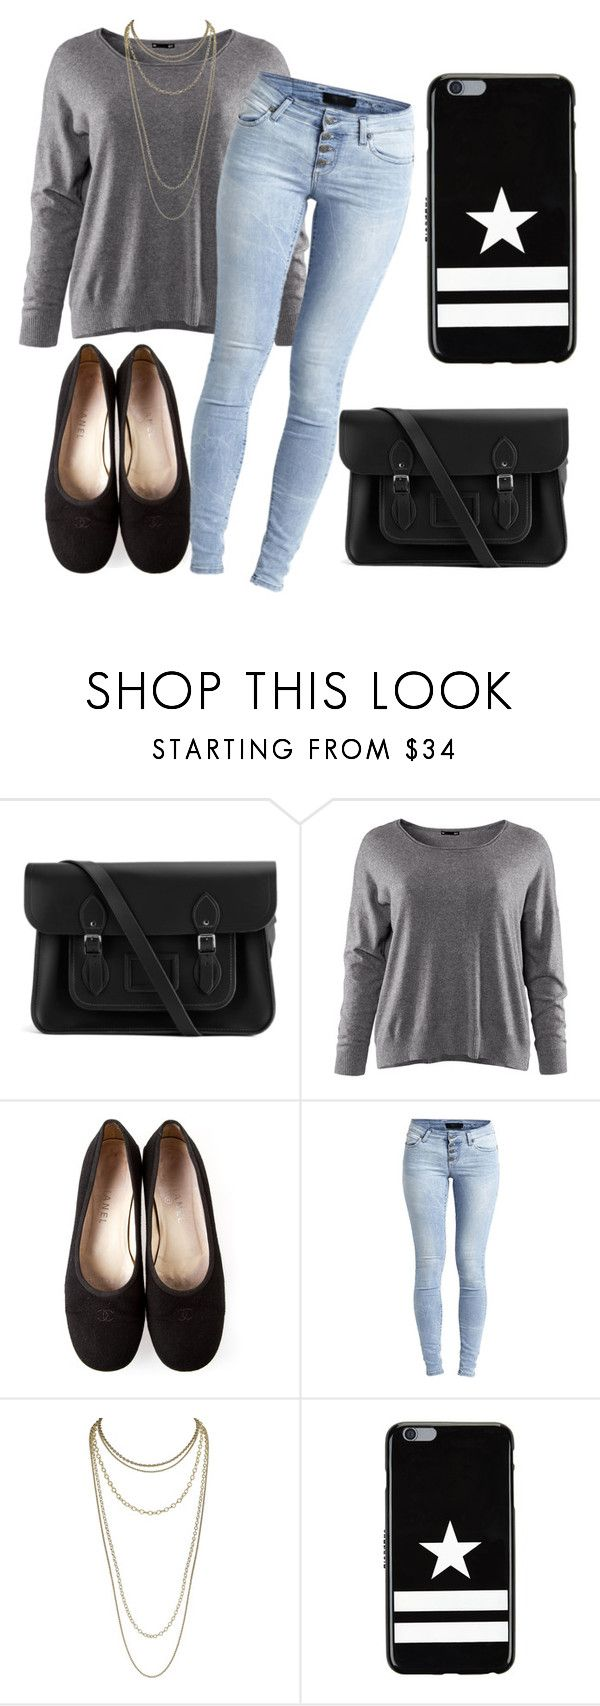 """My First Set - Weekend Shopping"" by fiona137 ❤ liked on Polyvore featuring The Cambridge Satchel Company, H&M, Chanel, Object Collectors Item, Scott Kay, Givenchy and casual"